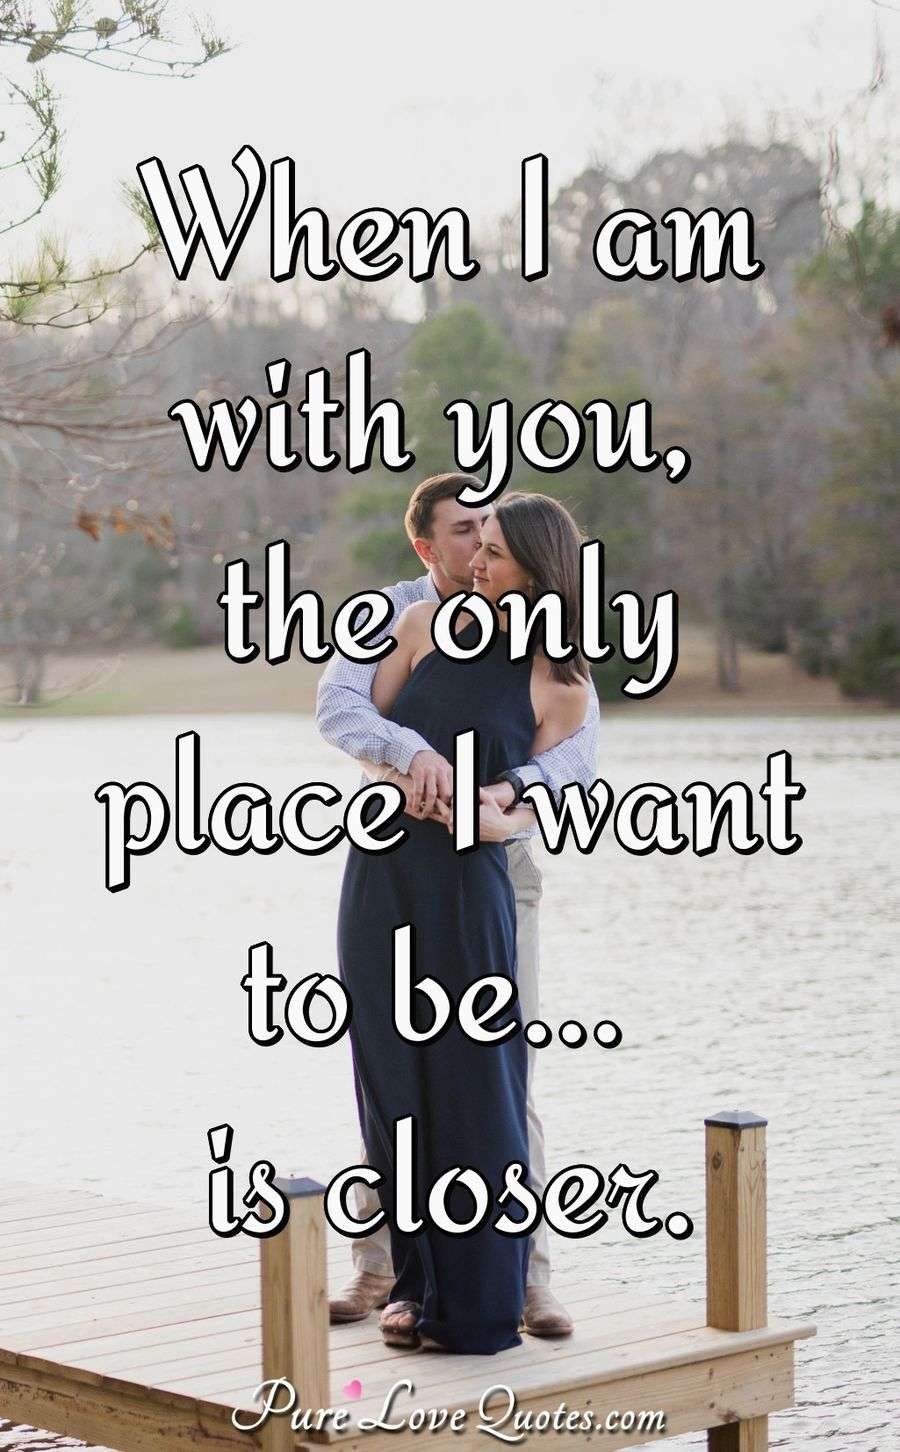 When I am with you, the only place I want to be is closer. - Anonymous